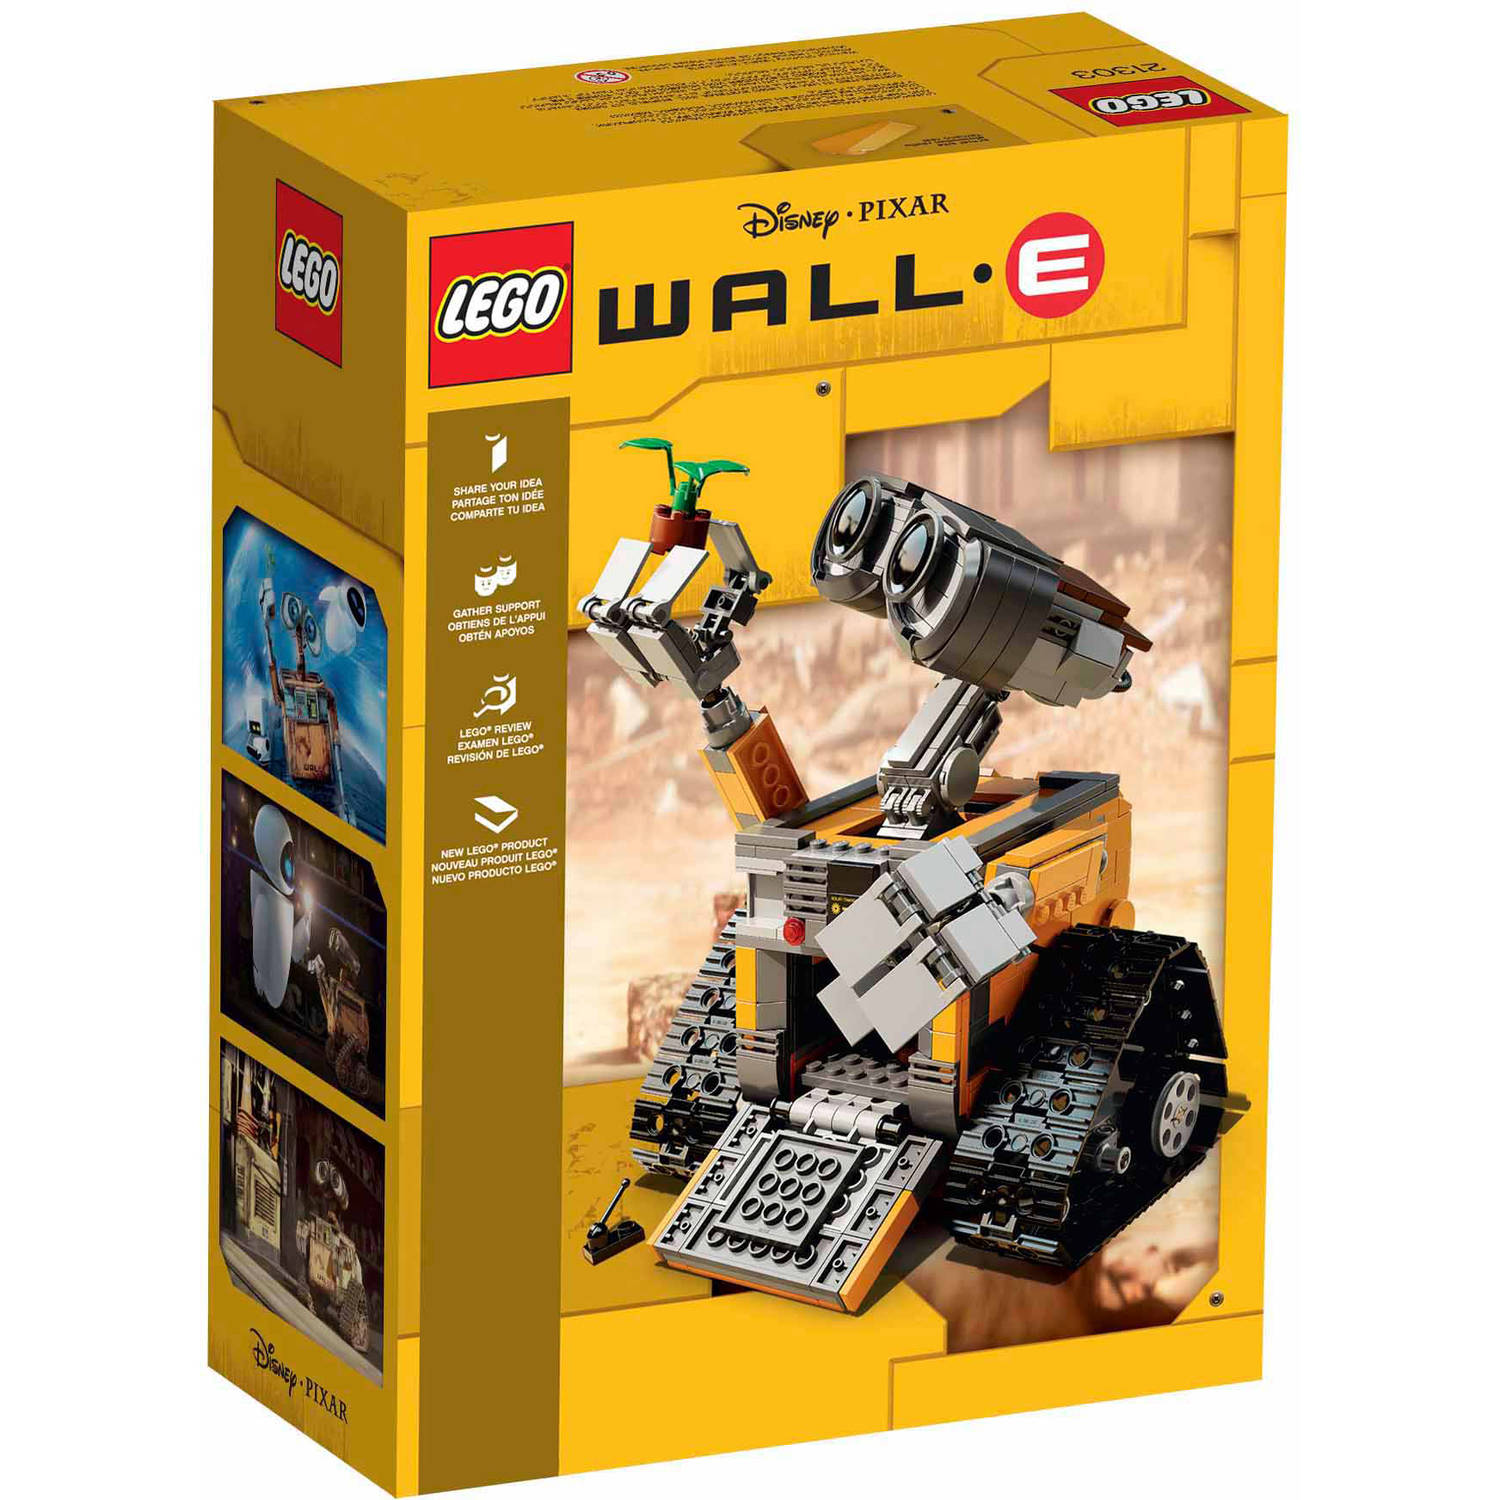 lego ideas wall-e - walmart